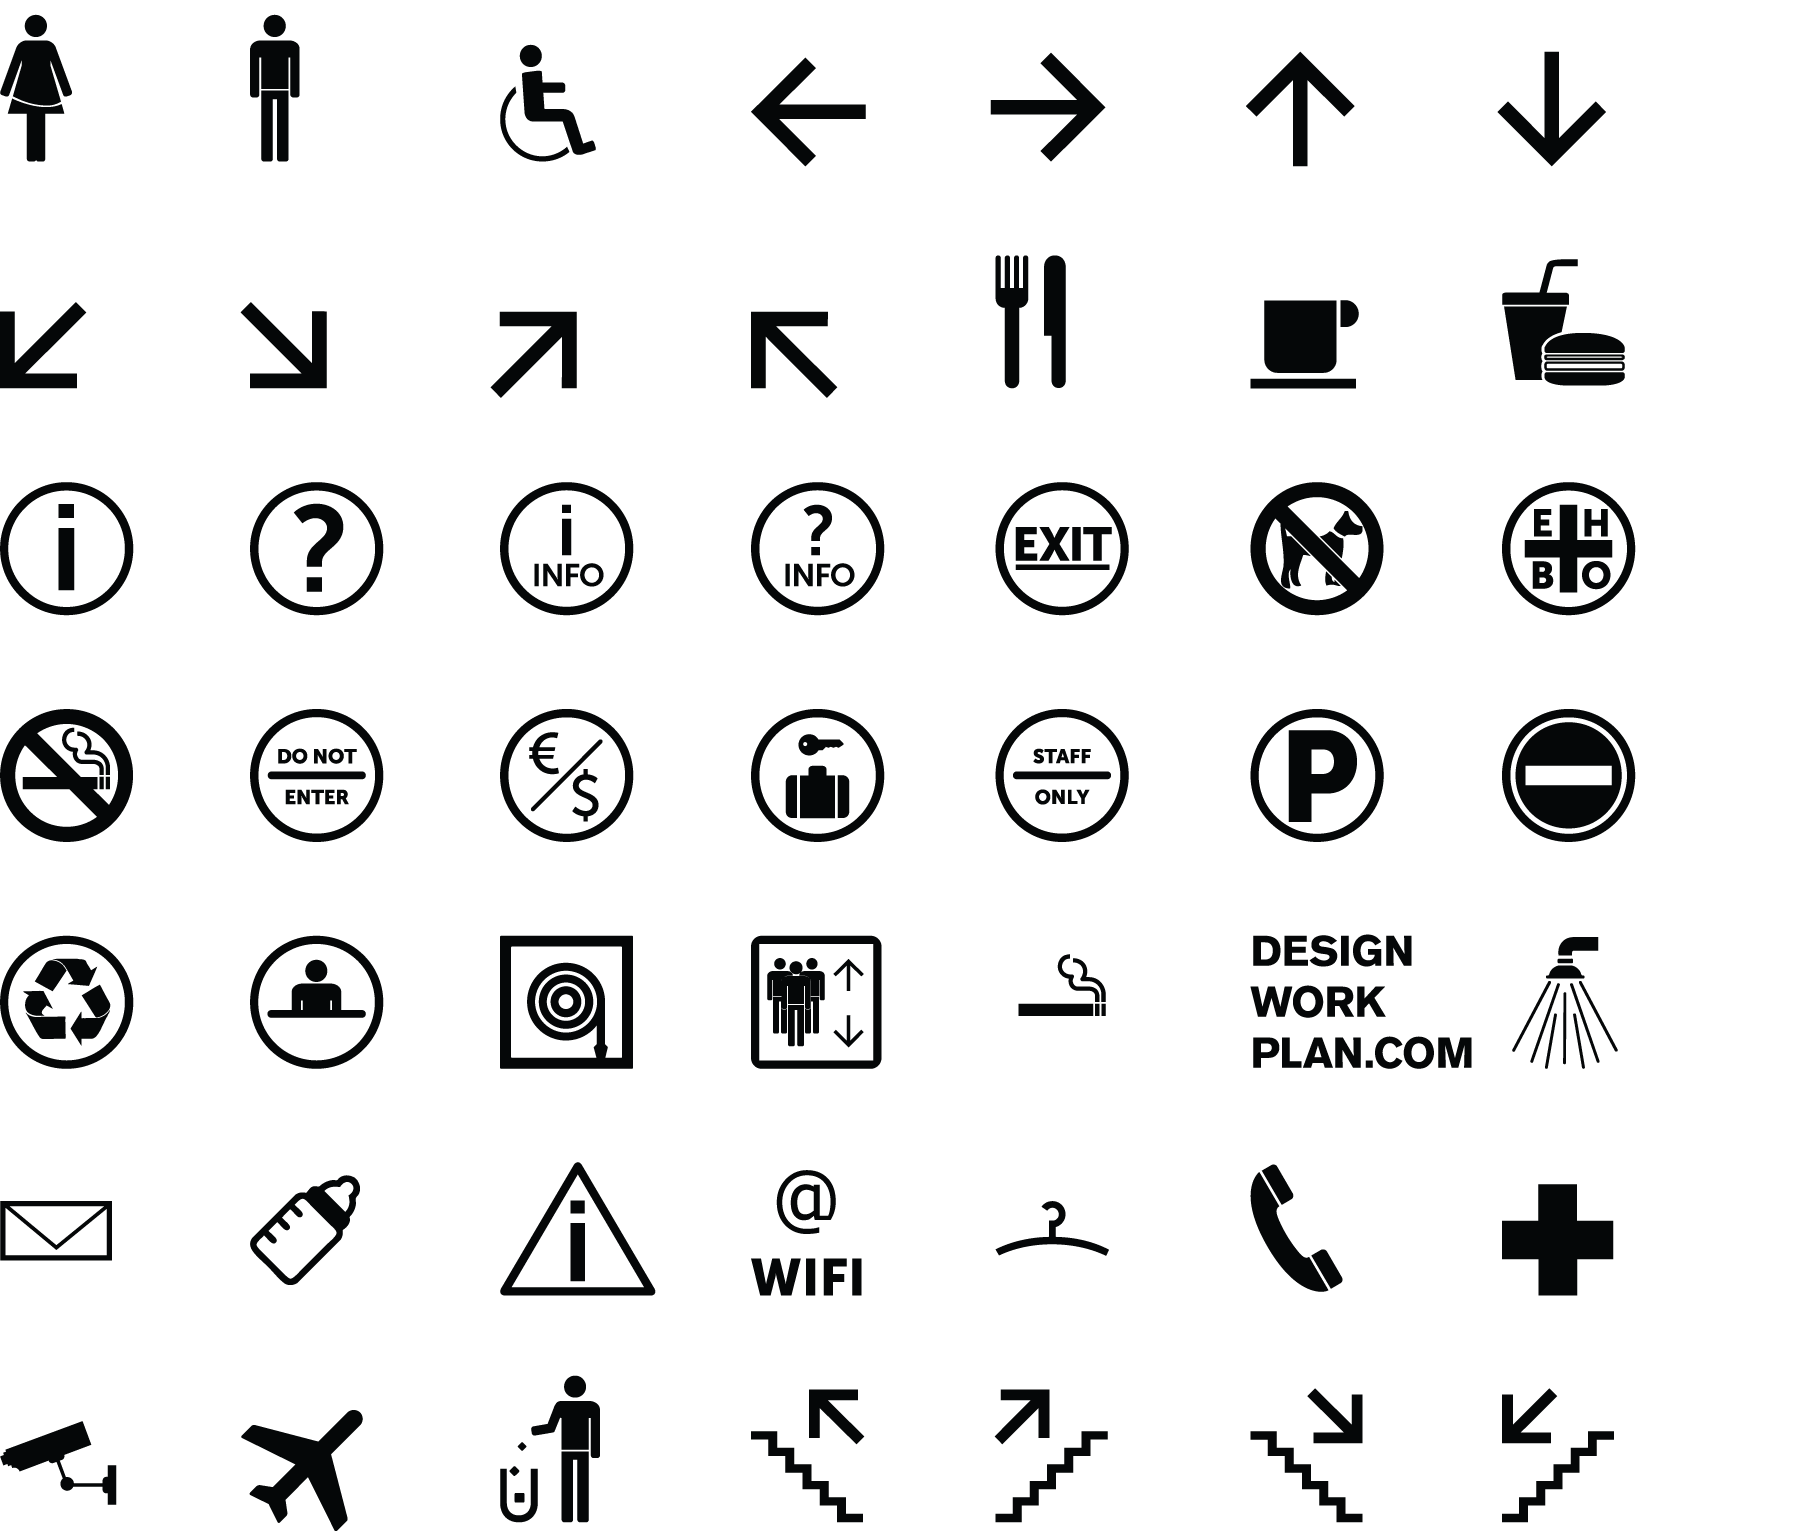 Free tool: Symbol Signs collection